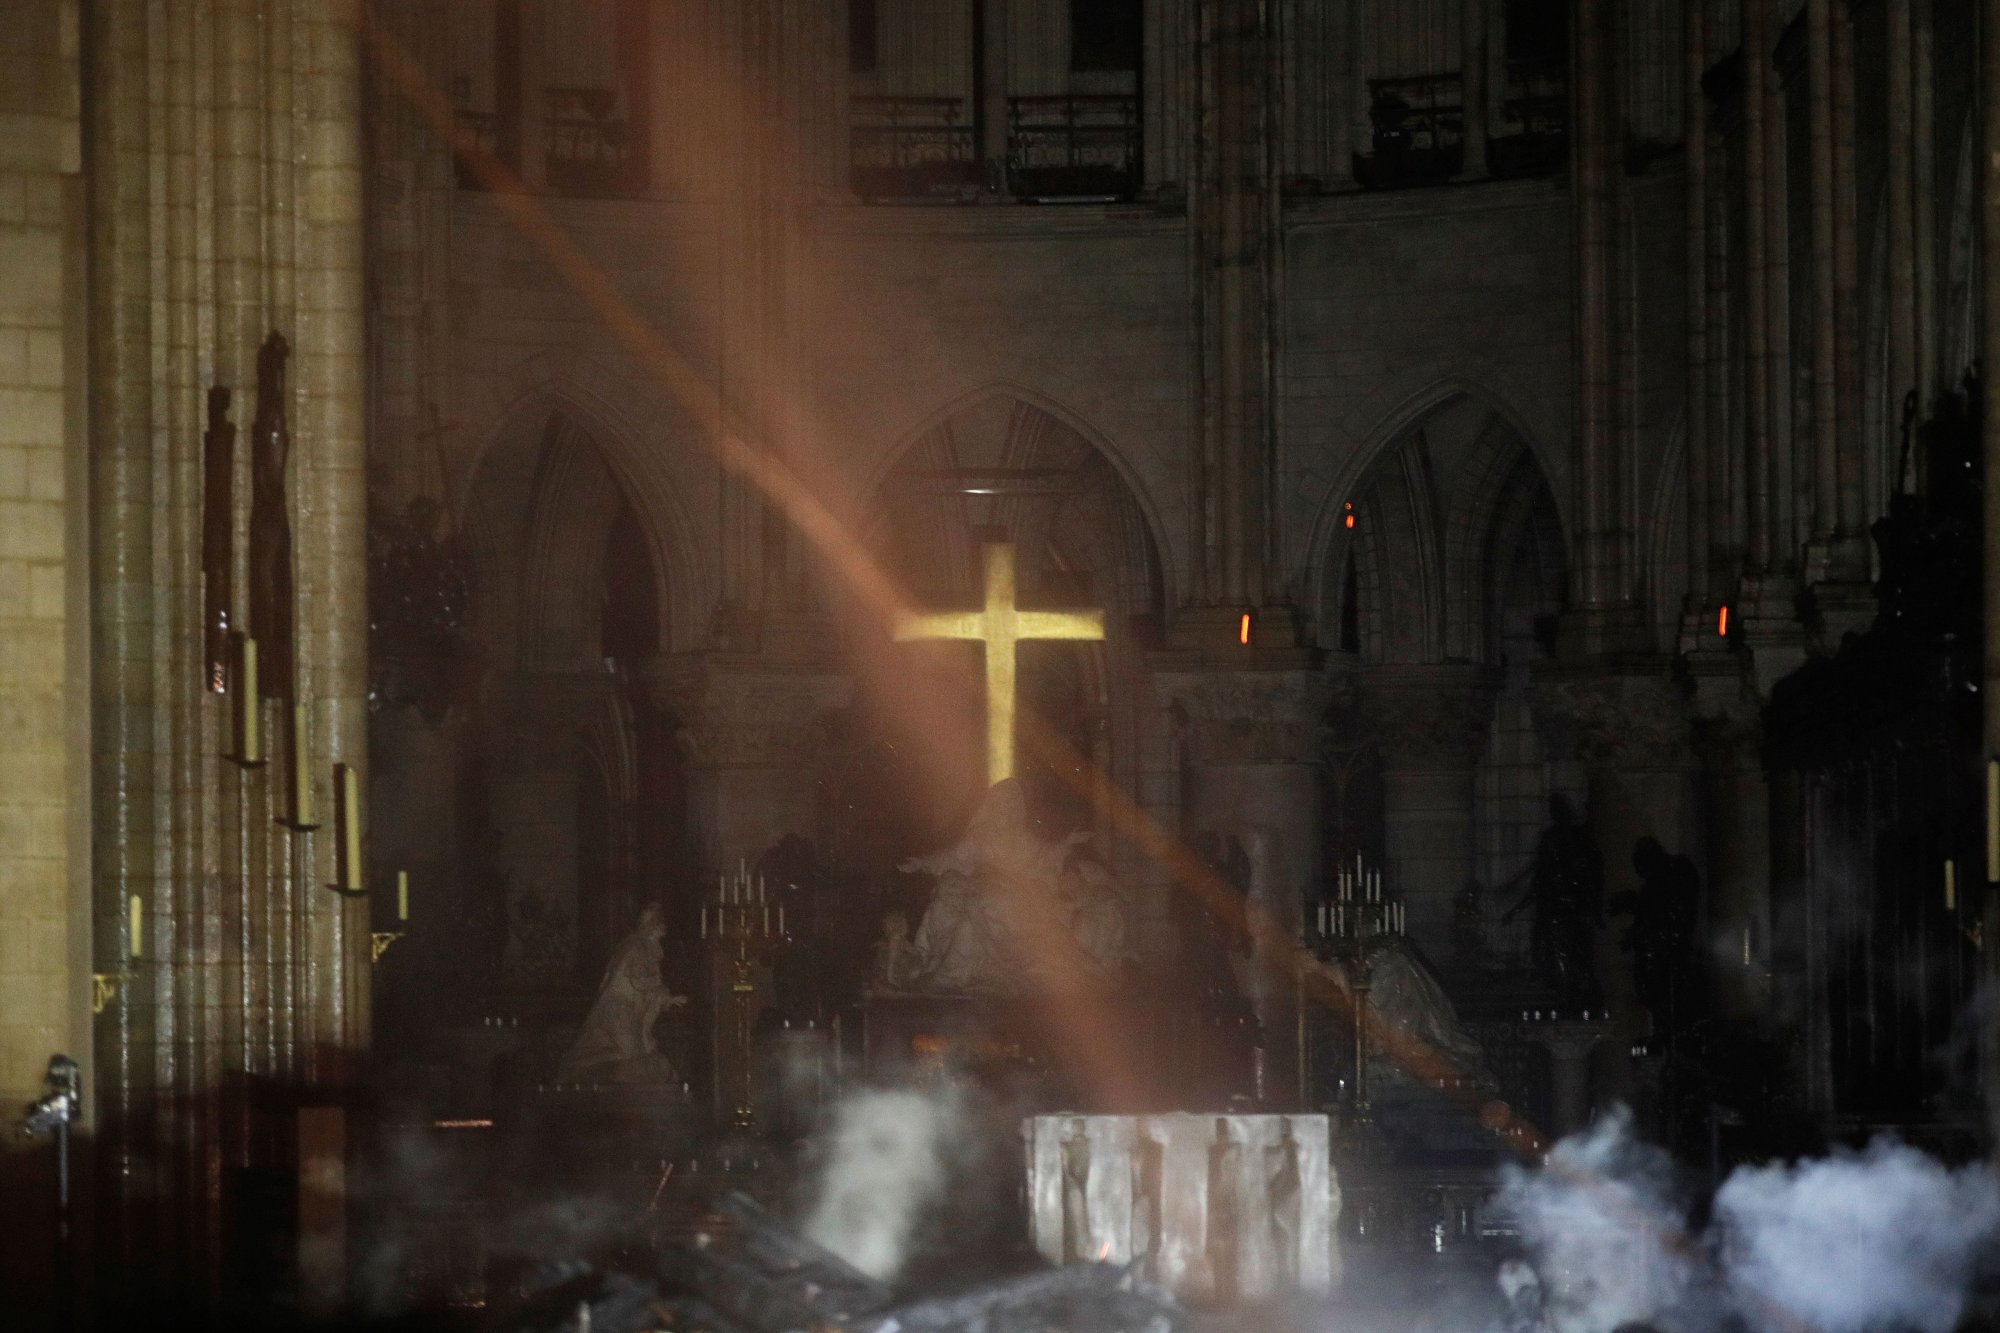 Smoke rises around the alter in front of the cross inside the Notre-Dame Cathedral as the fire continues to burn on April 16, 2019 in the French capital Paris. - A huge fire swept through the roof of the famed Notre-Dame Cathedral in central Paris on April 15, 2019, sending flames and huge clouds of grey smoke billowing into the sky. The flames and smoke plumed from the spire and roof of the gothic cathedral, visited by millions of people a year. A spokesman for the cathedral told AFP that the wooden structure supporting the roof was being gutted by the blaze. (Photo by PHILIPPE WOJAZER / POOL / AFP)        (Photo credit should read PHILIPPE WOJAZER/AFP/Getty Images)